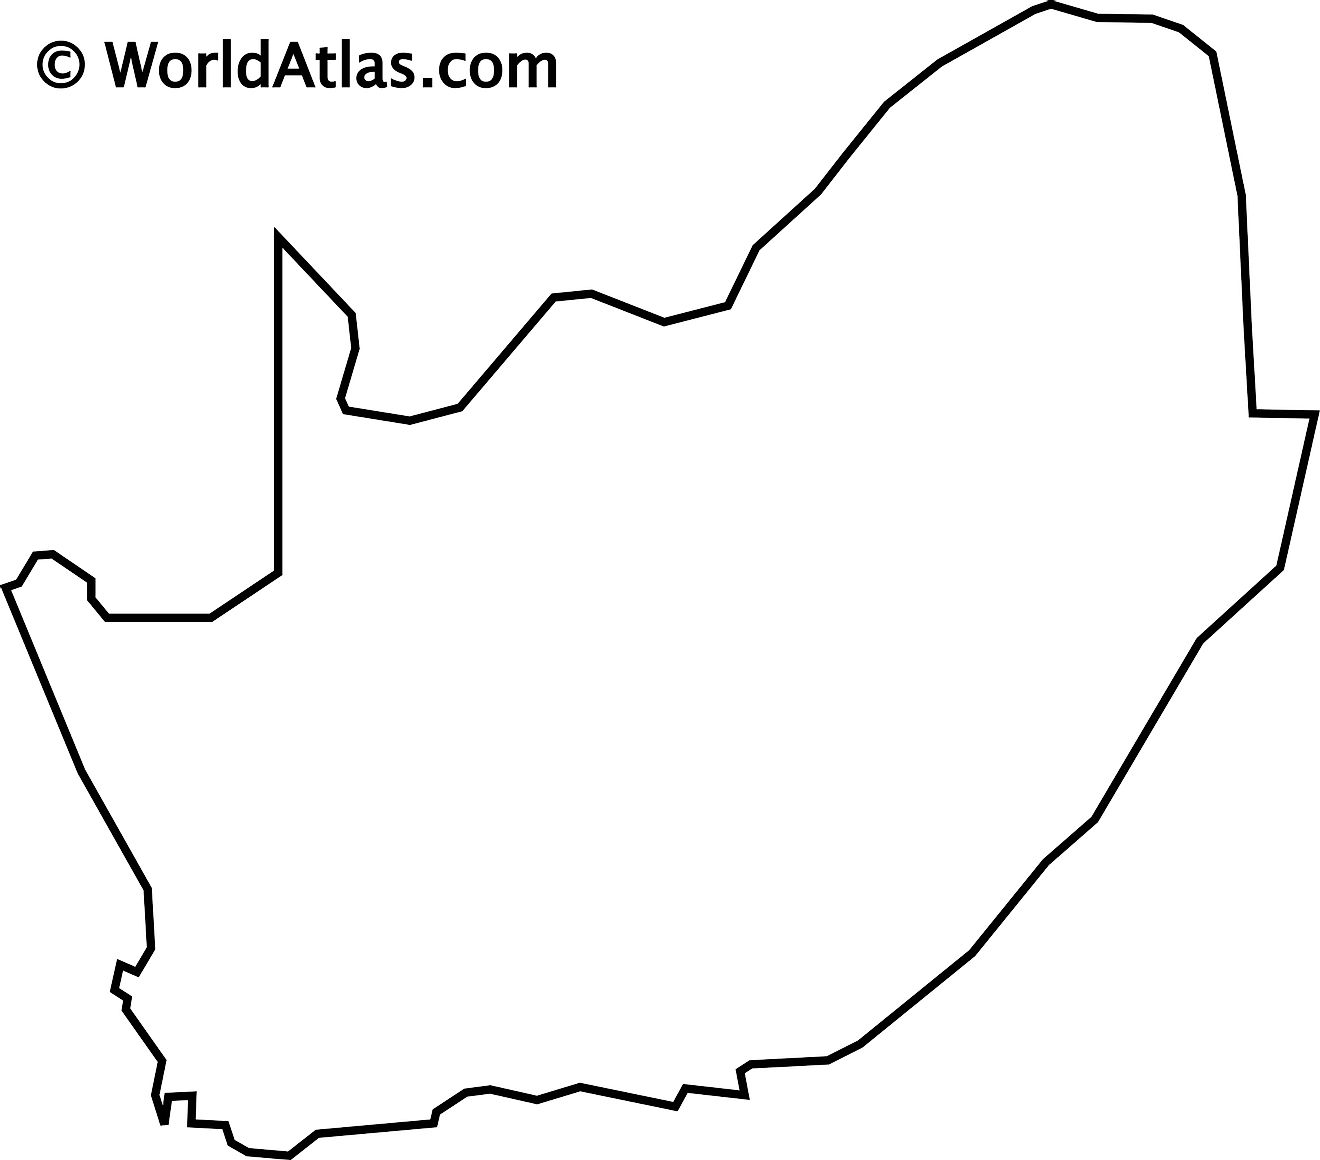 Blank Outline Map of South Africa